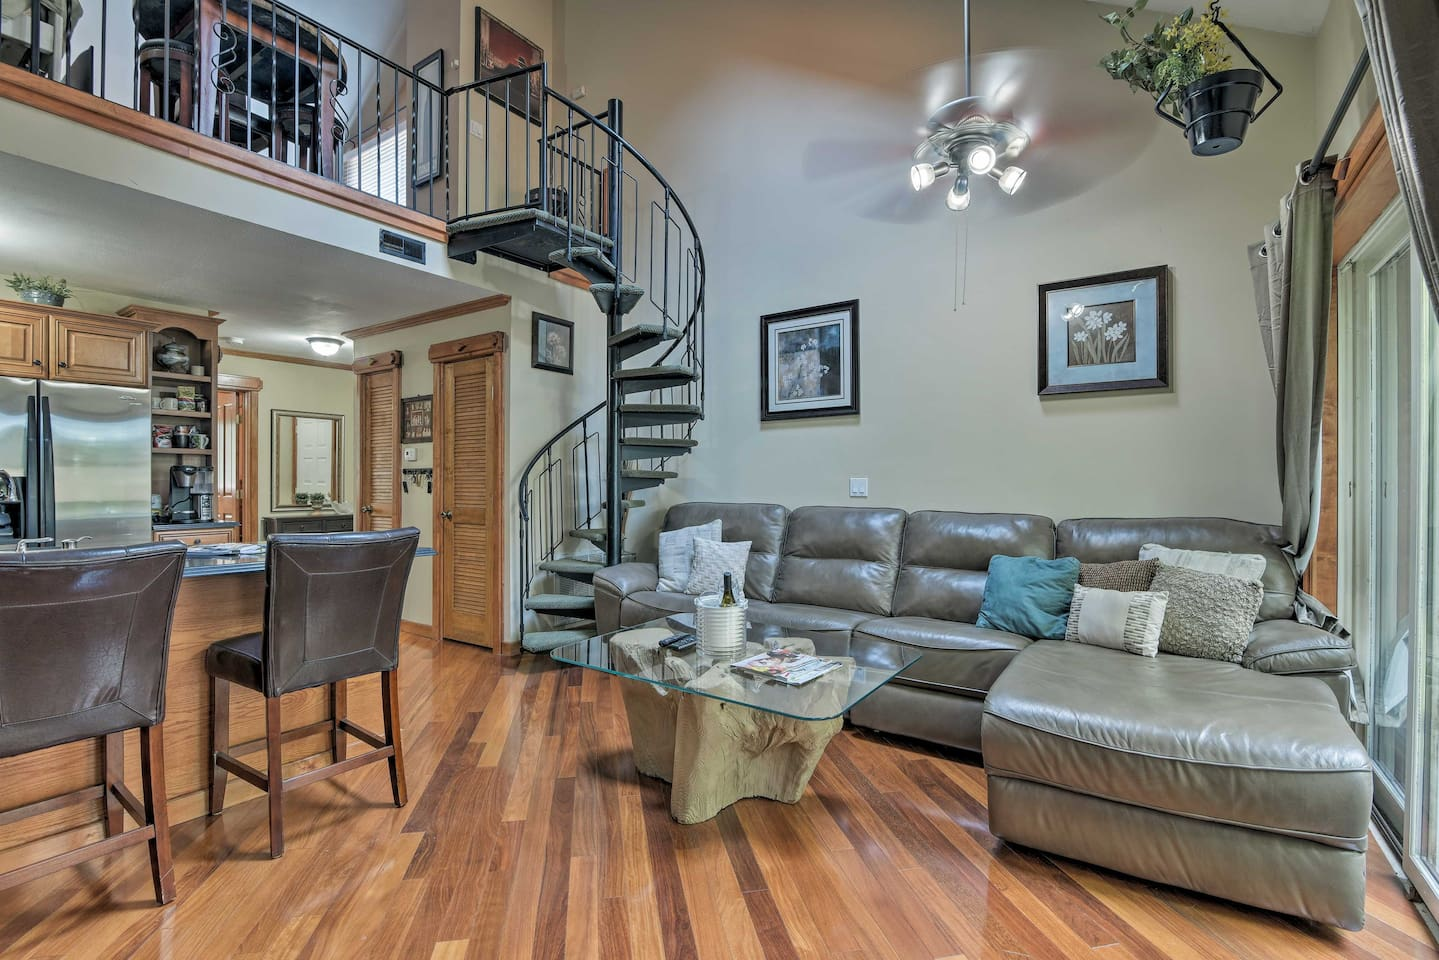 Book this 1-bed, 2-bath vacation rental for your next Vernon Township getaway!